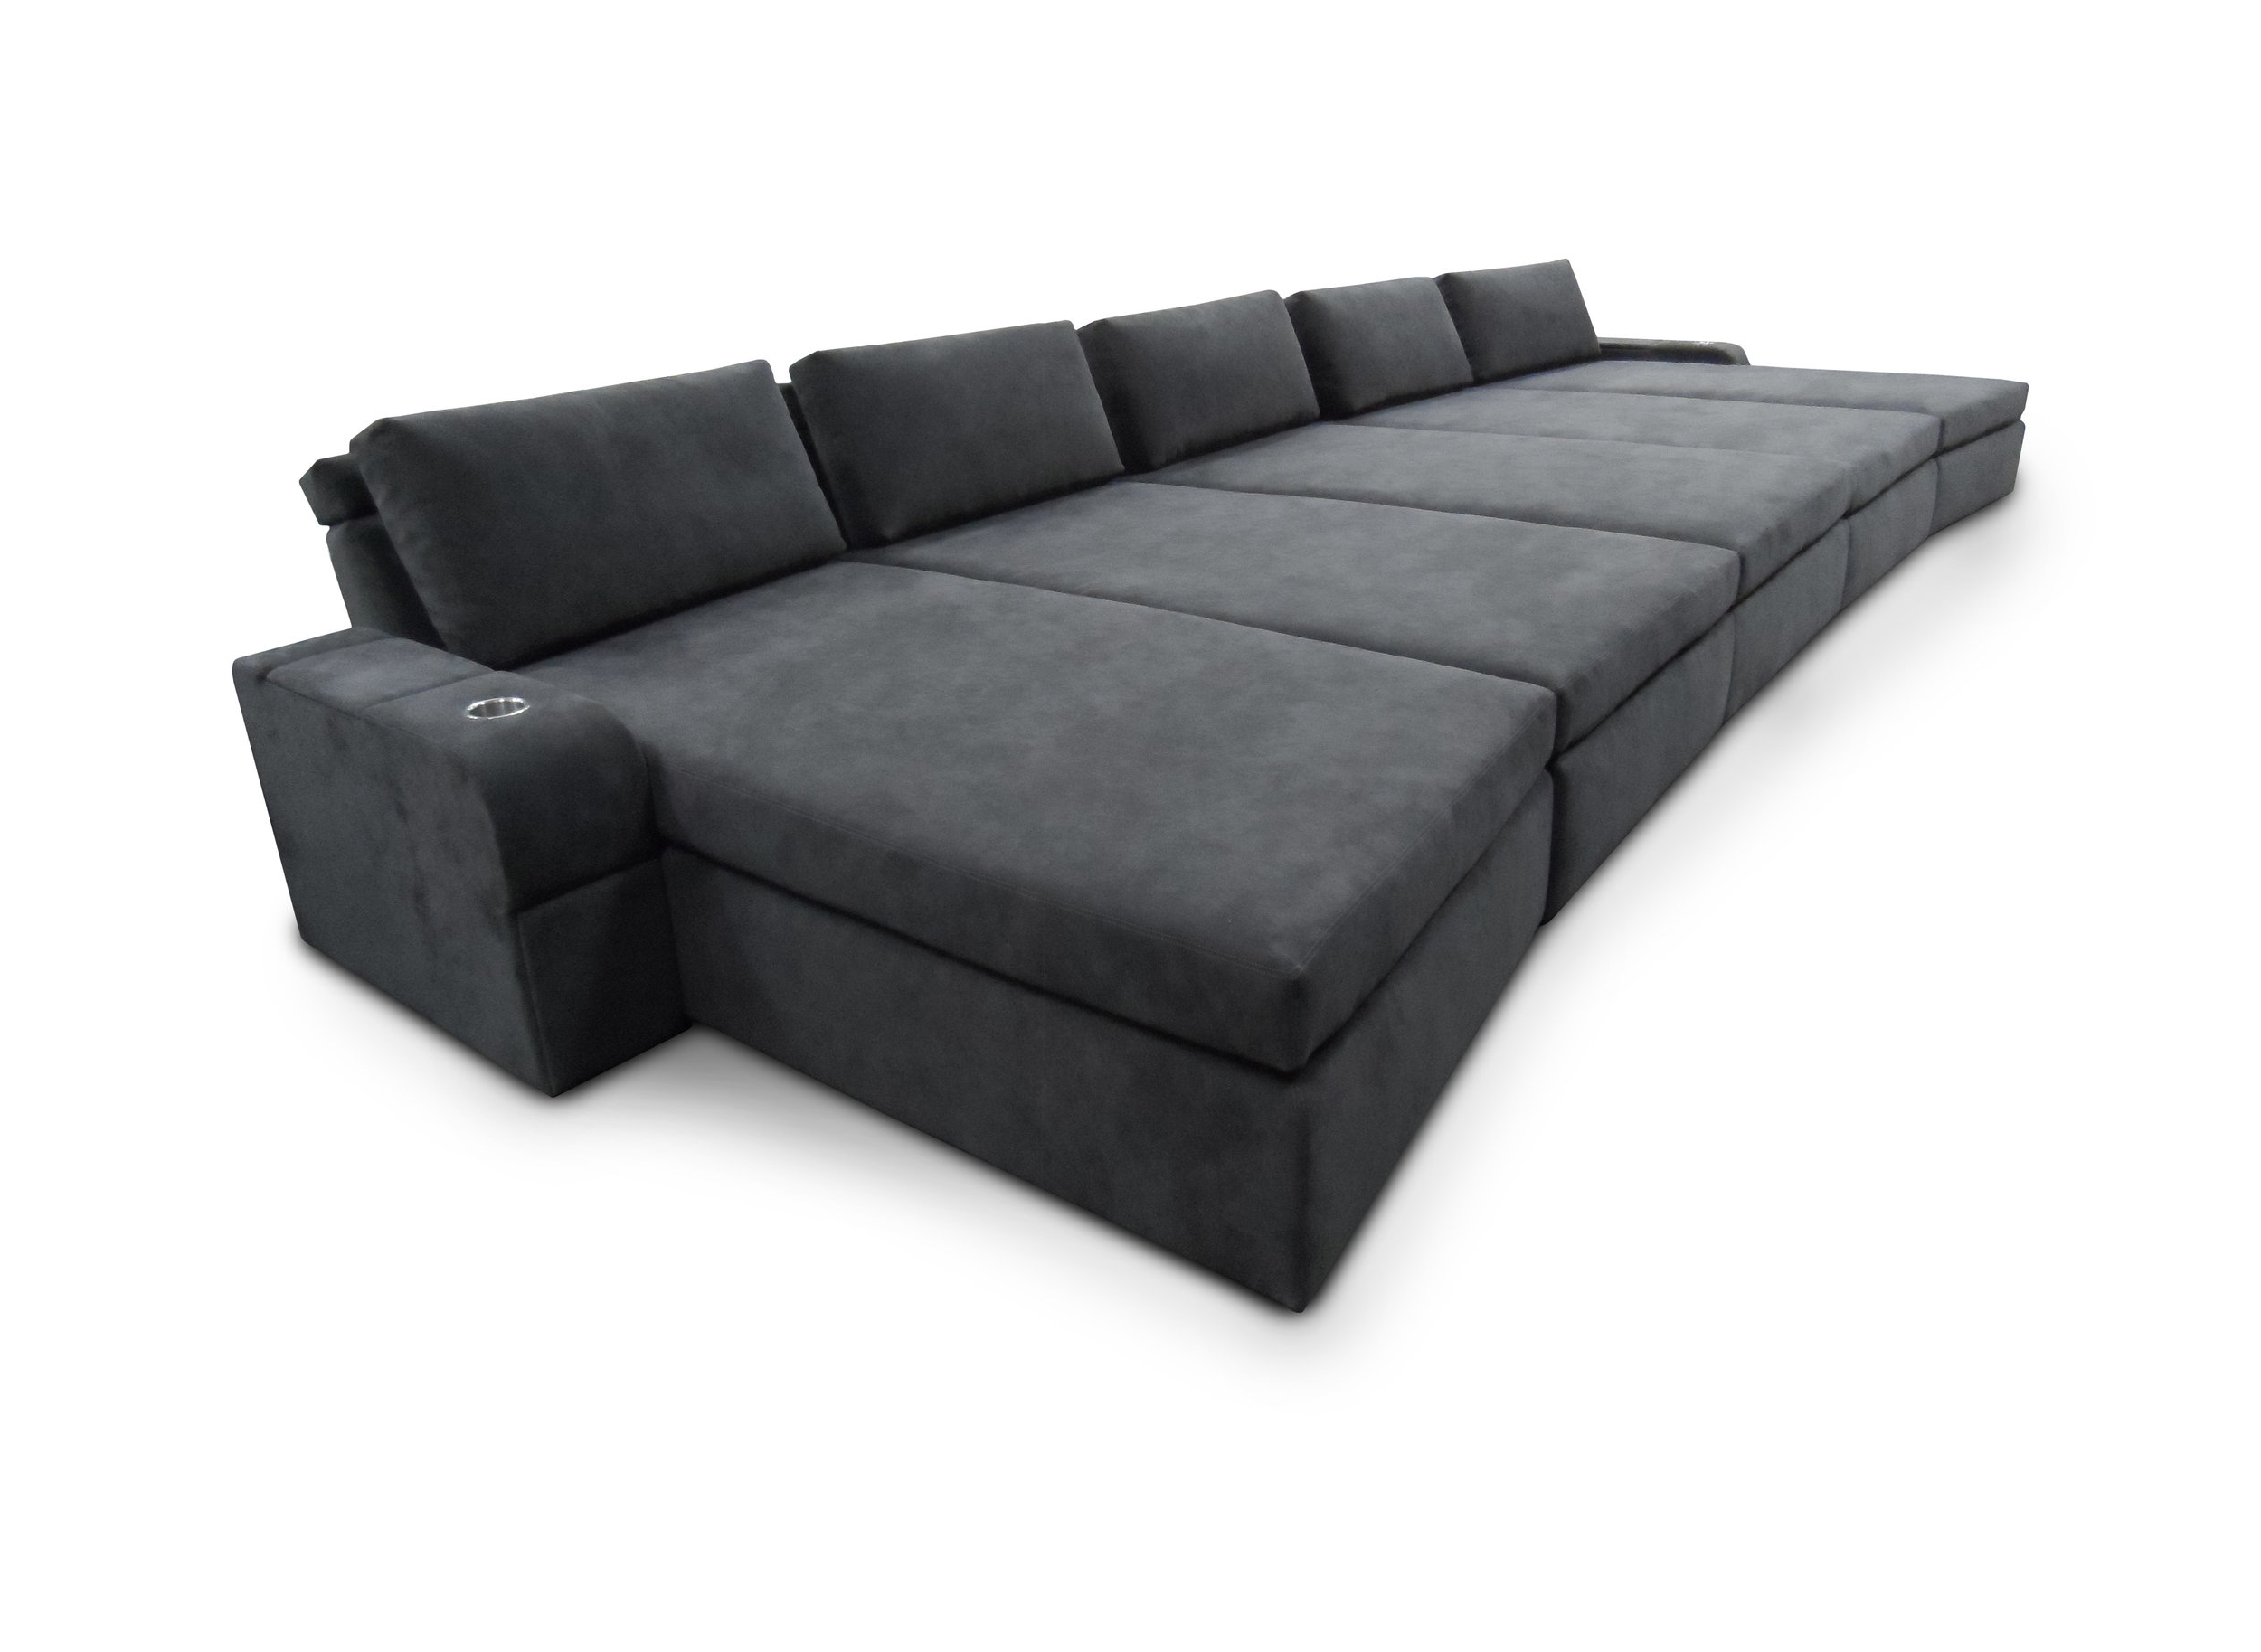 Lounger: Motorized Adjustable Headrest; Loose Back Pillows; Storage Compartments and Drawers in end arms; Reading Lights